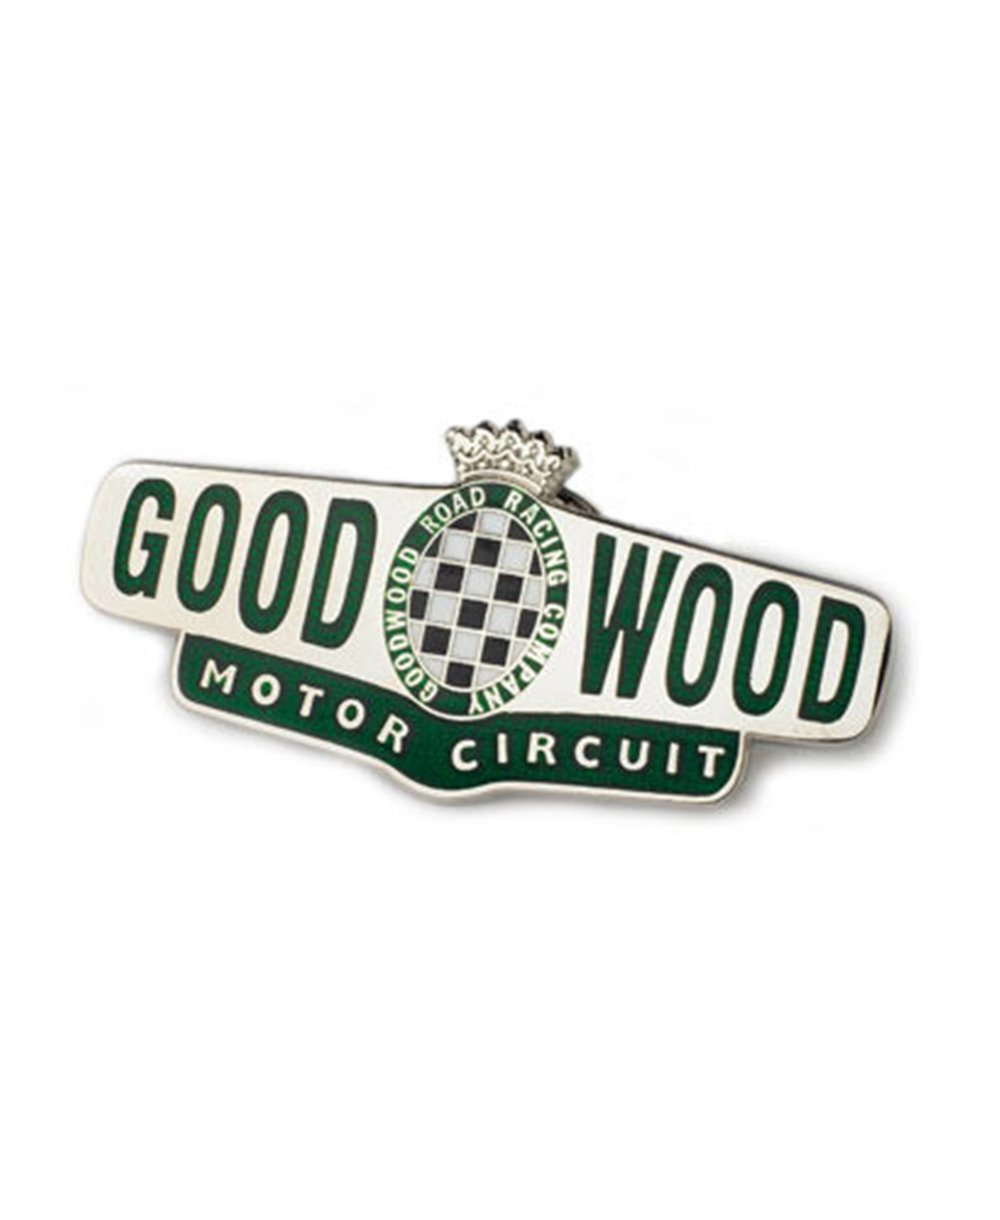 Goodwood Motor Circuit Enamel Pin Badge